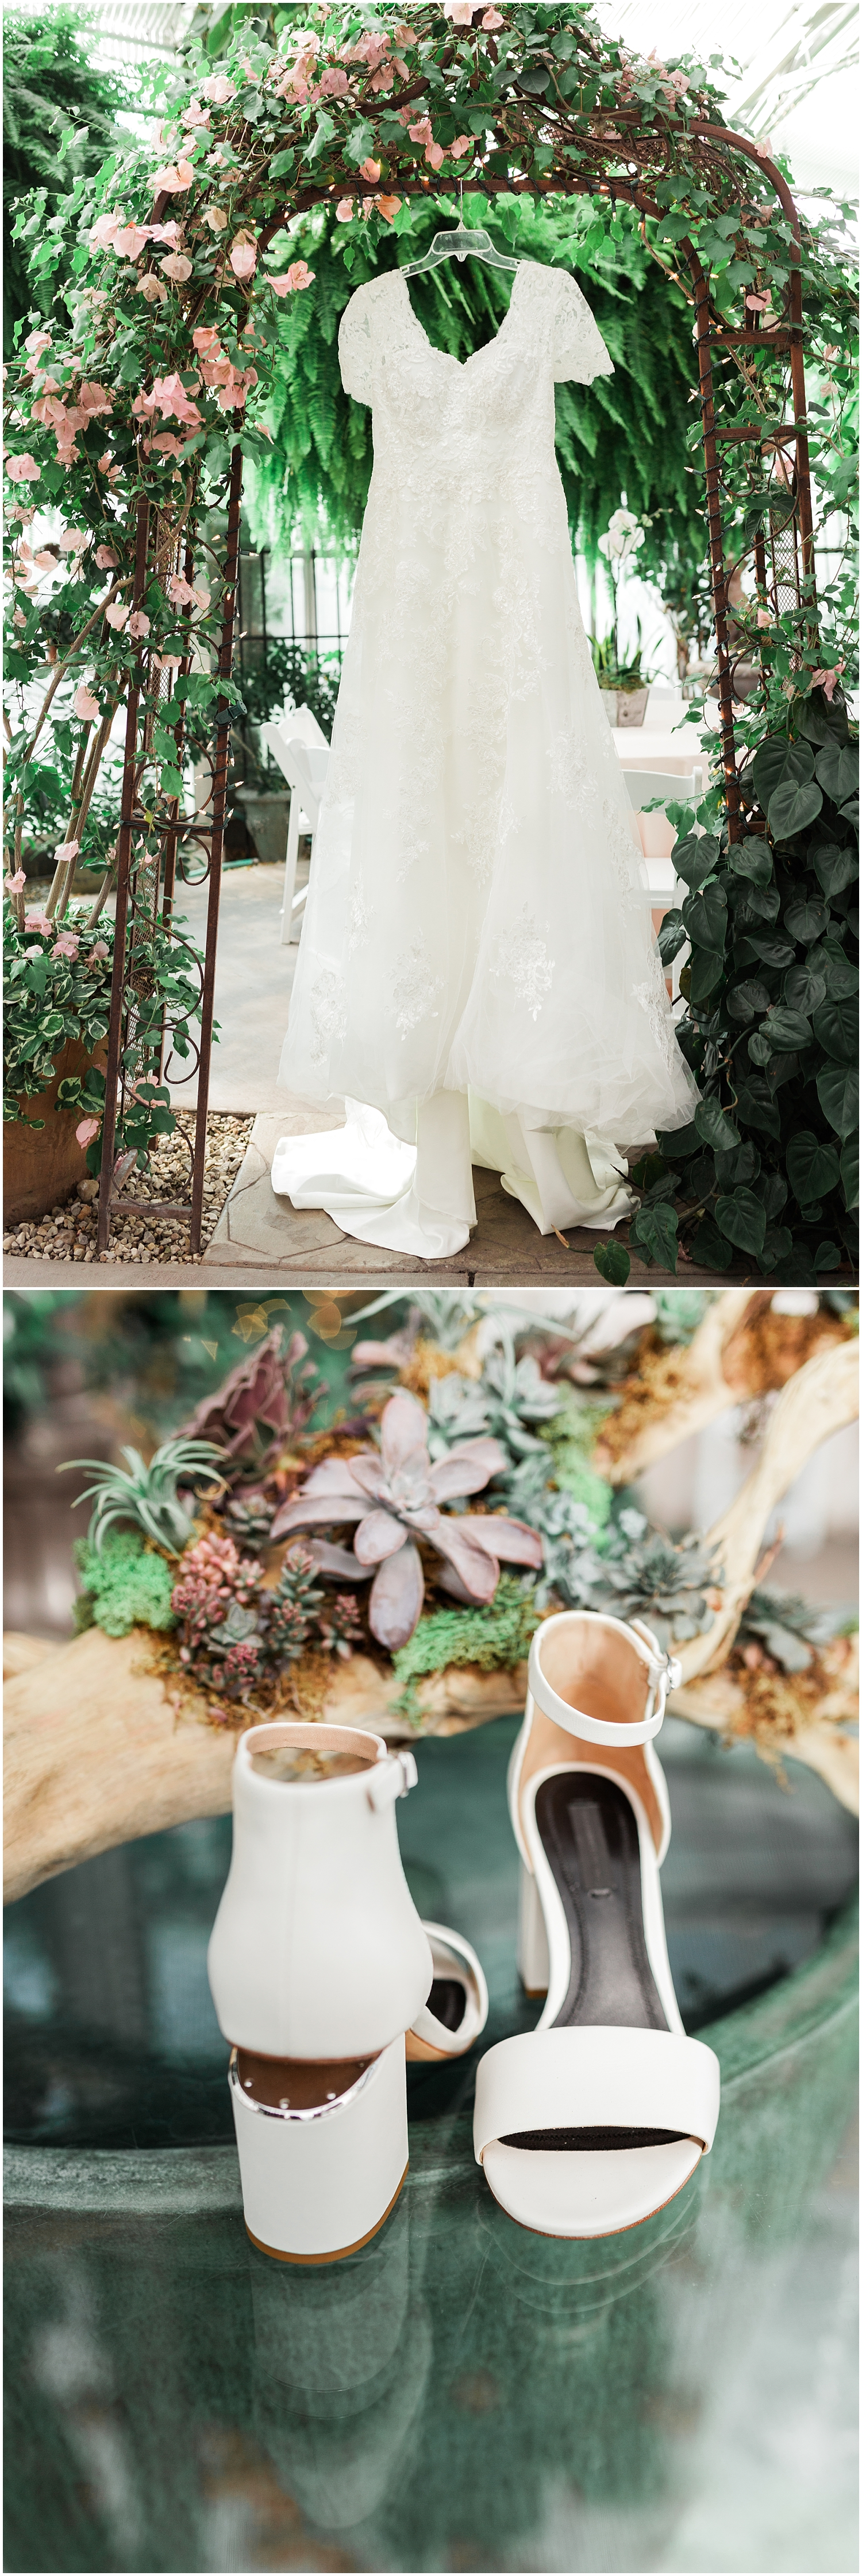 Rachel Reyes Photography-Utah Wedding Photographer-The Villa in Cedar Hills_0071.jpg